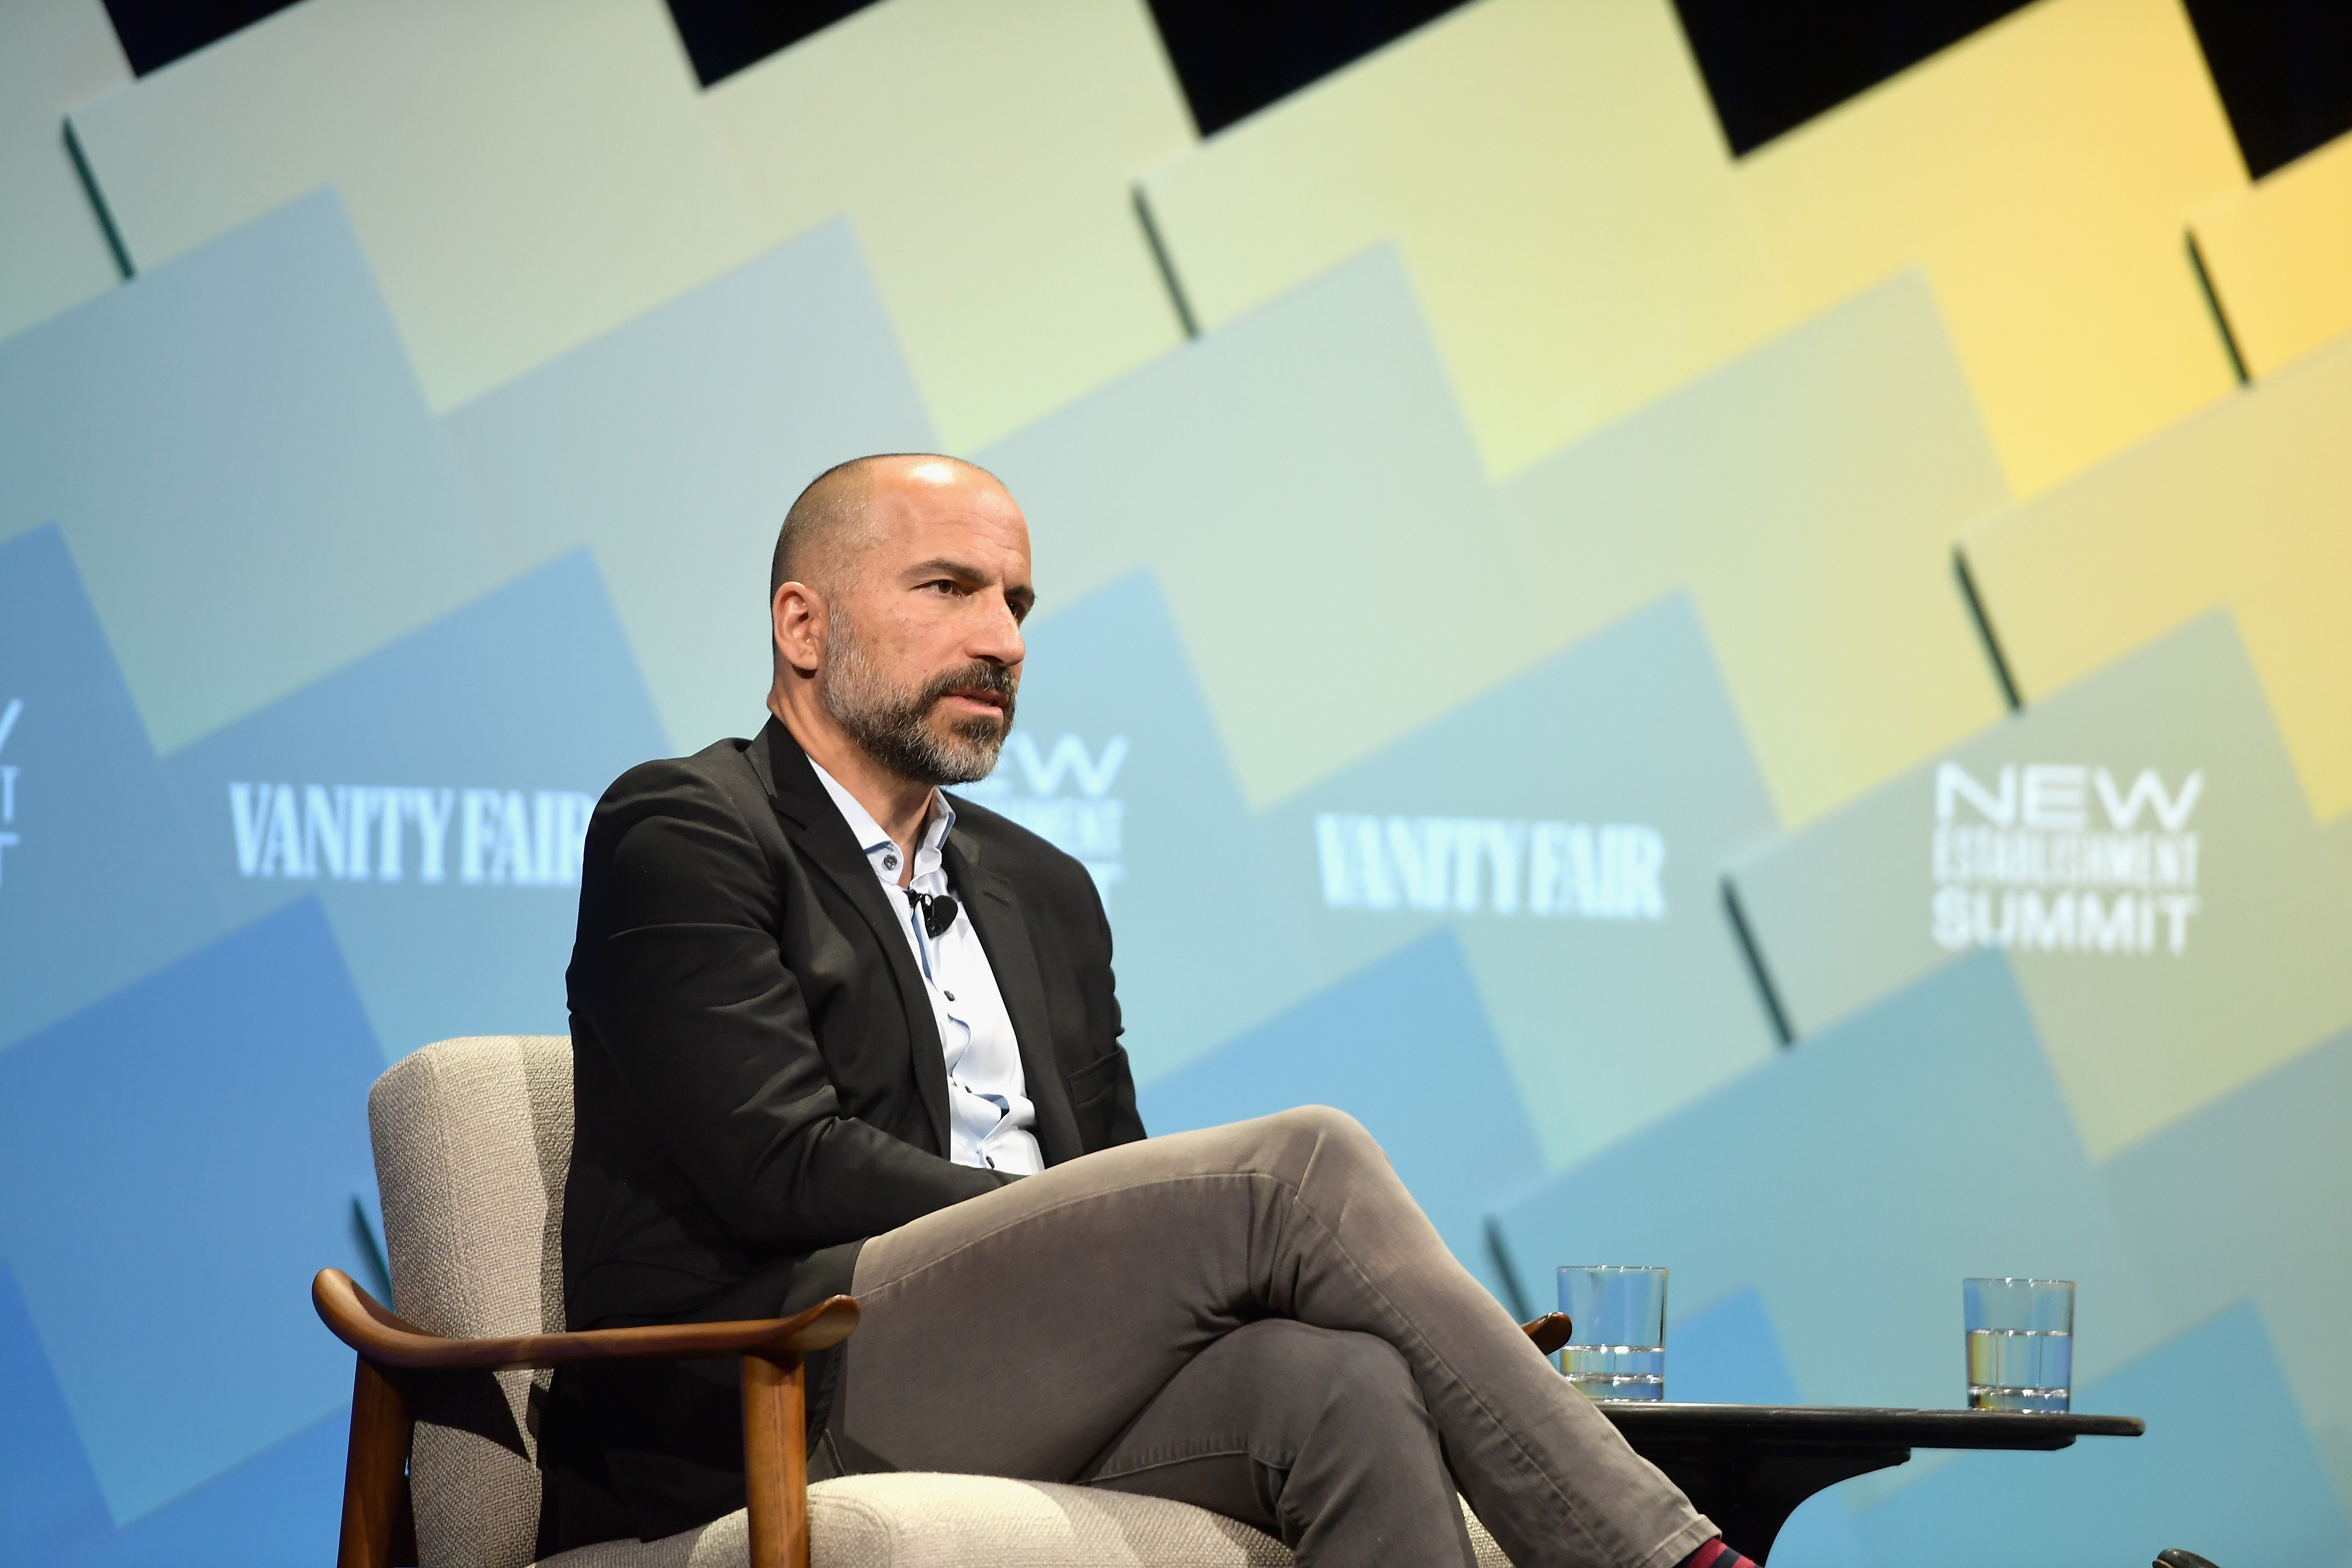 C.E.O of Uber, Dara Khosrowshahi speaks onstage at Day 1 of the Vanity Fair New Establishment Summit 2018 at The Wallis Annenberg Center for the Performing Arts on October 9, 2018 in Beverly Hills, California. Matt Winkelmeyer/Getty Images